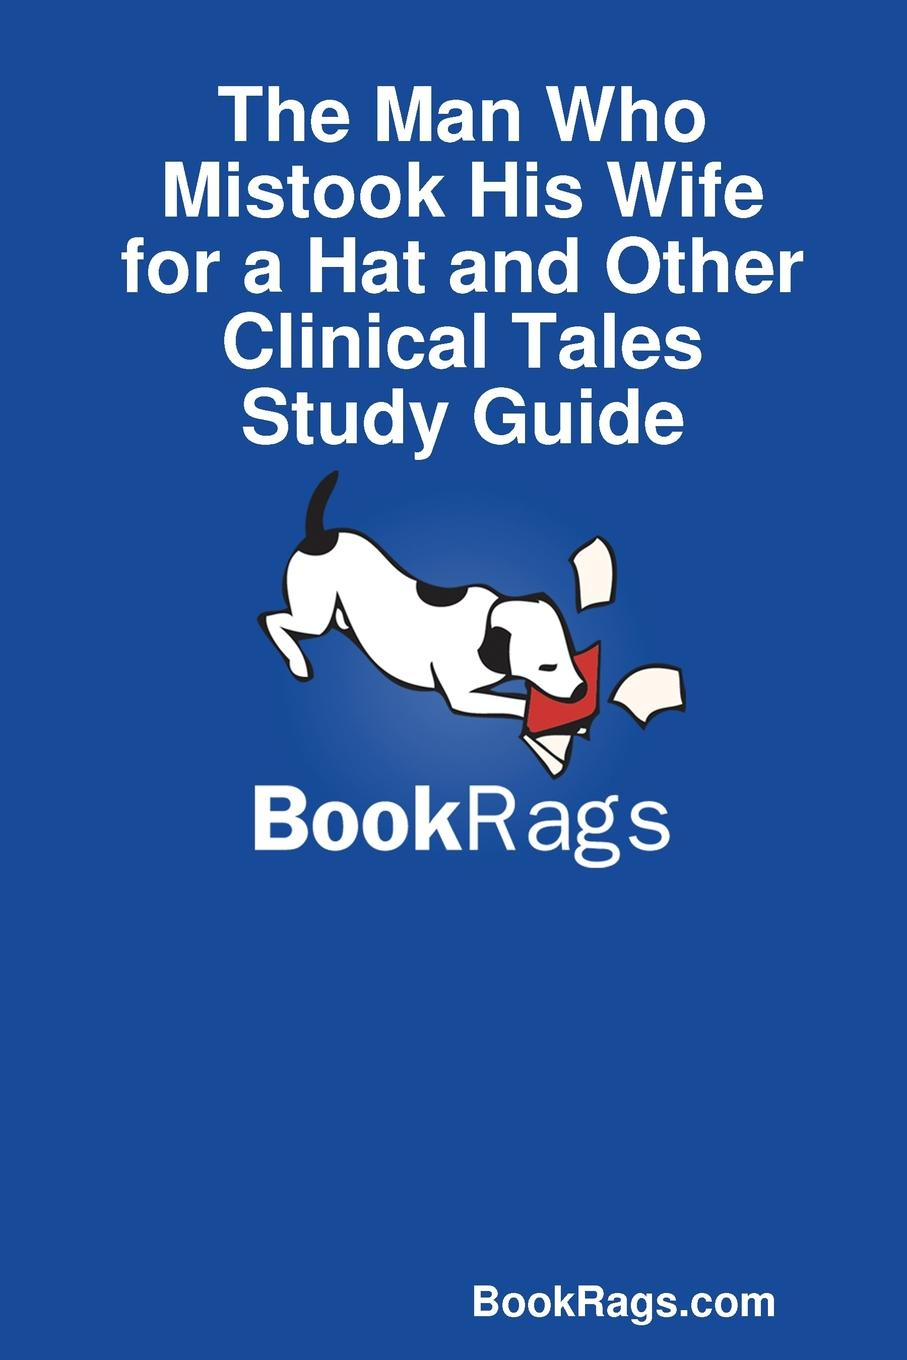 Bookrags Com The Man Who Mistook His Wife for a Hat and Other Clinical Tales Study Guide the wife